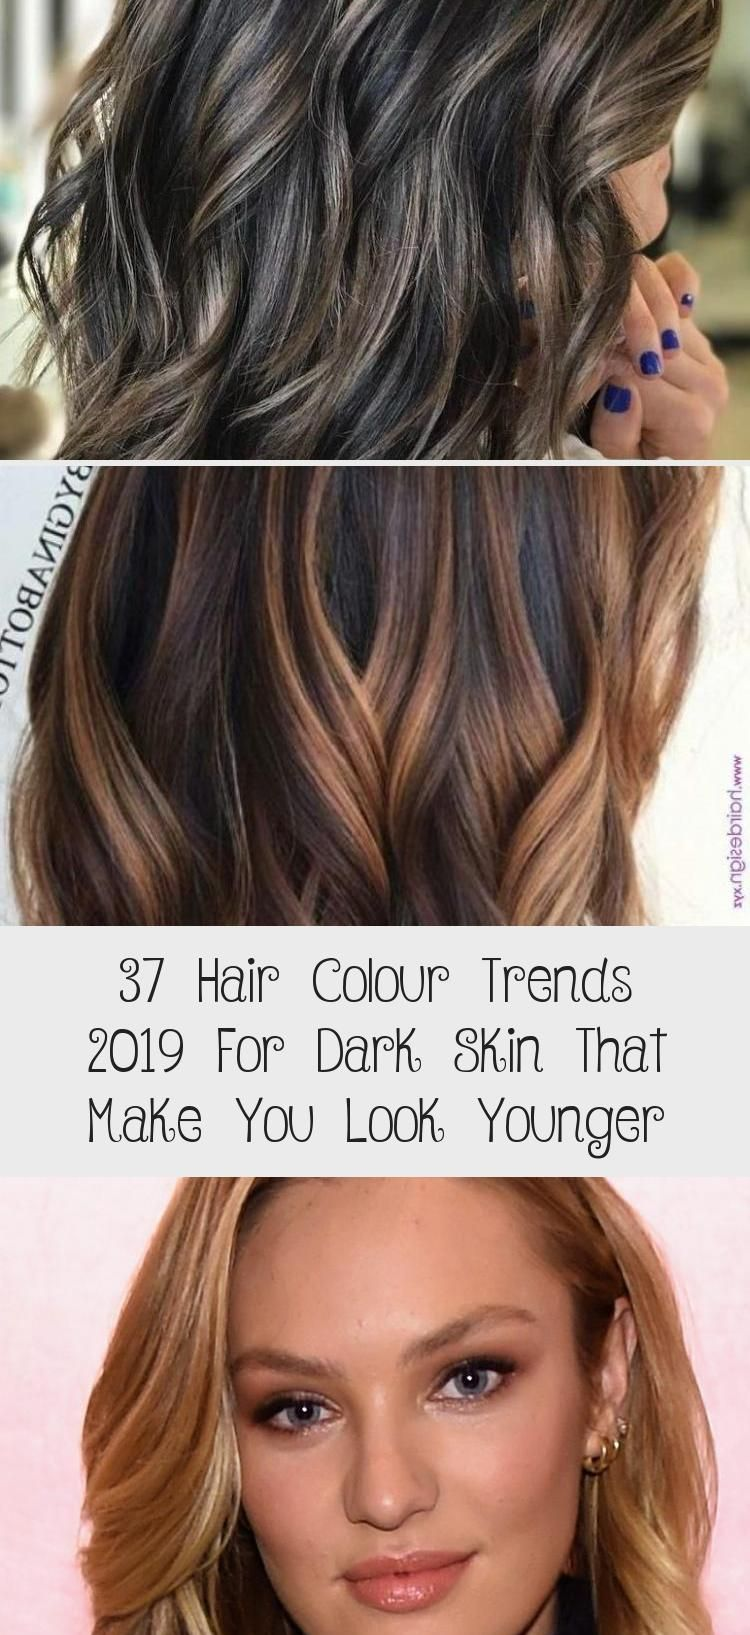 37 Hair Colour Trends 2019 For Dark Skin That Make You Look Younger In 2020 Hair Color Trends Hair Color Dark Skin